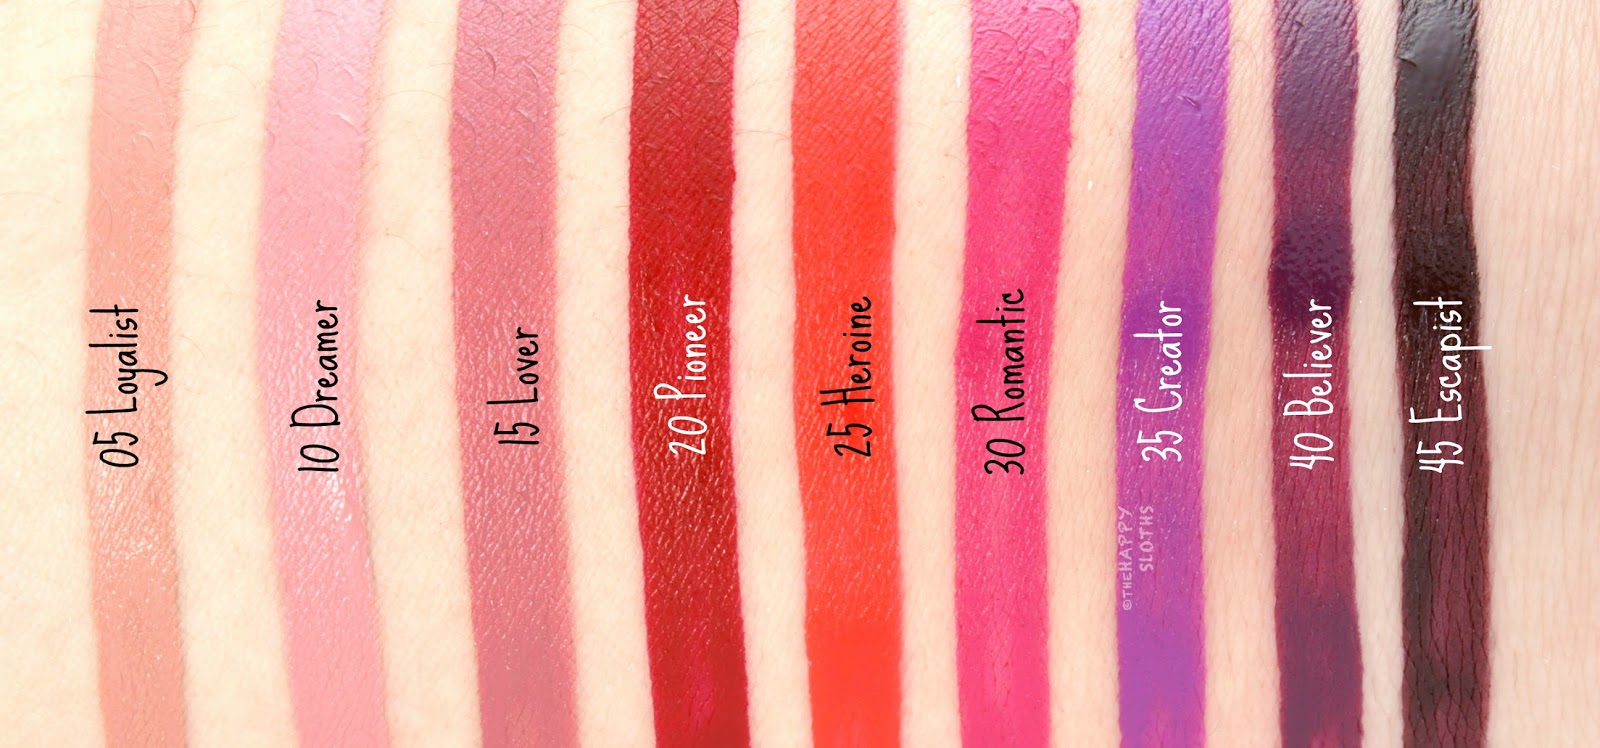 Maybelline Superstay Matte Ink Liquid Lipstick  Review and Swatches 861011dbd79